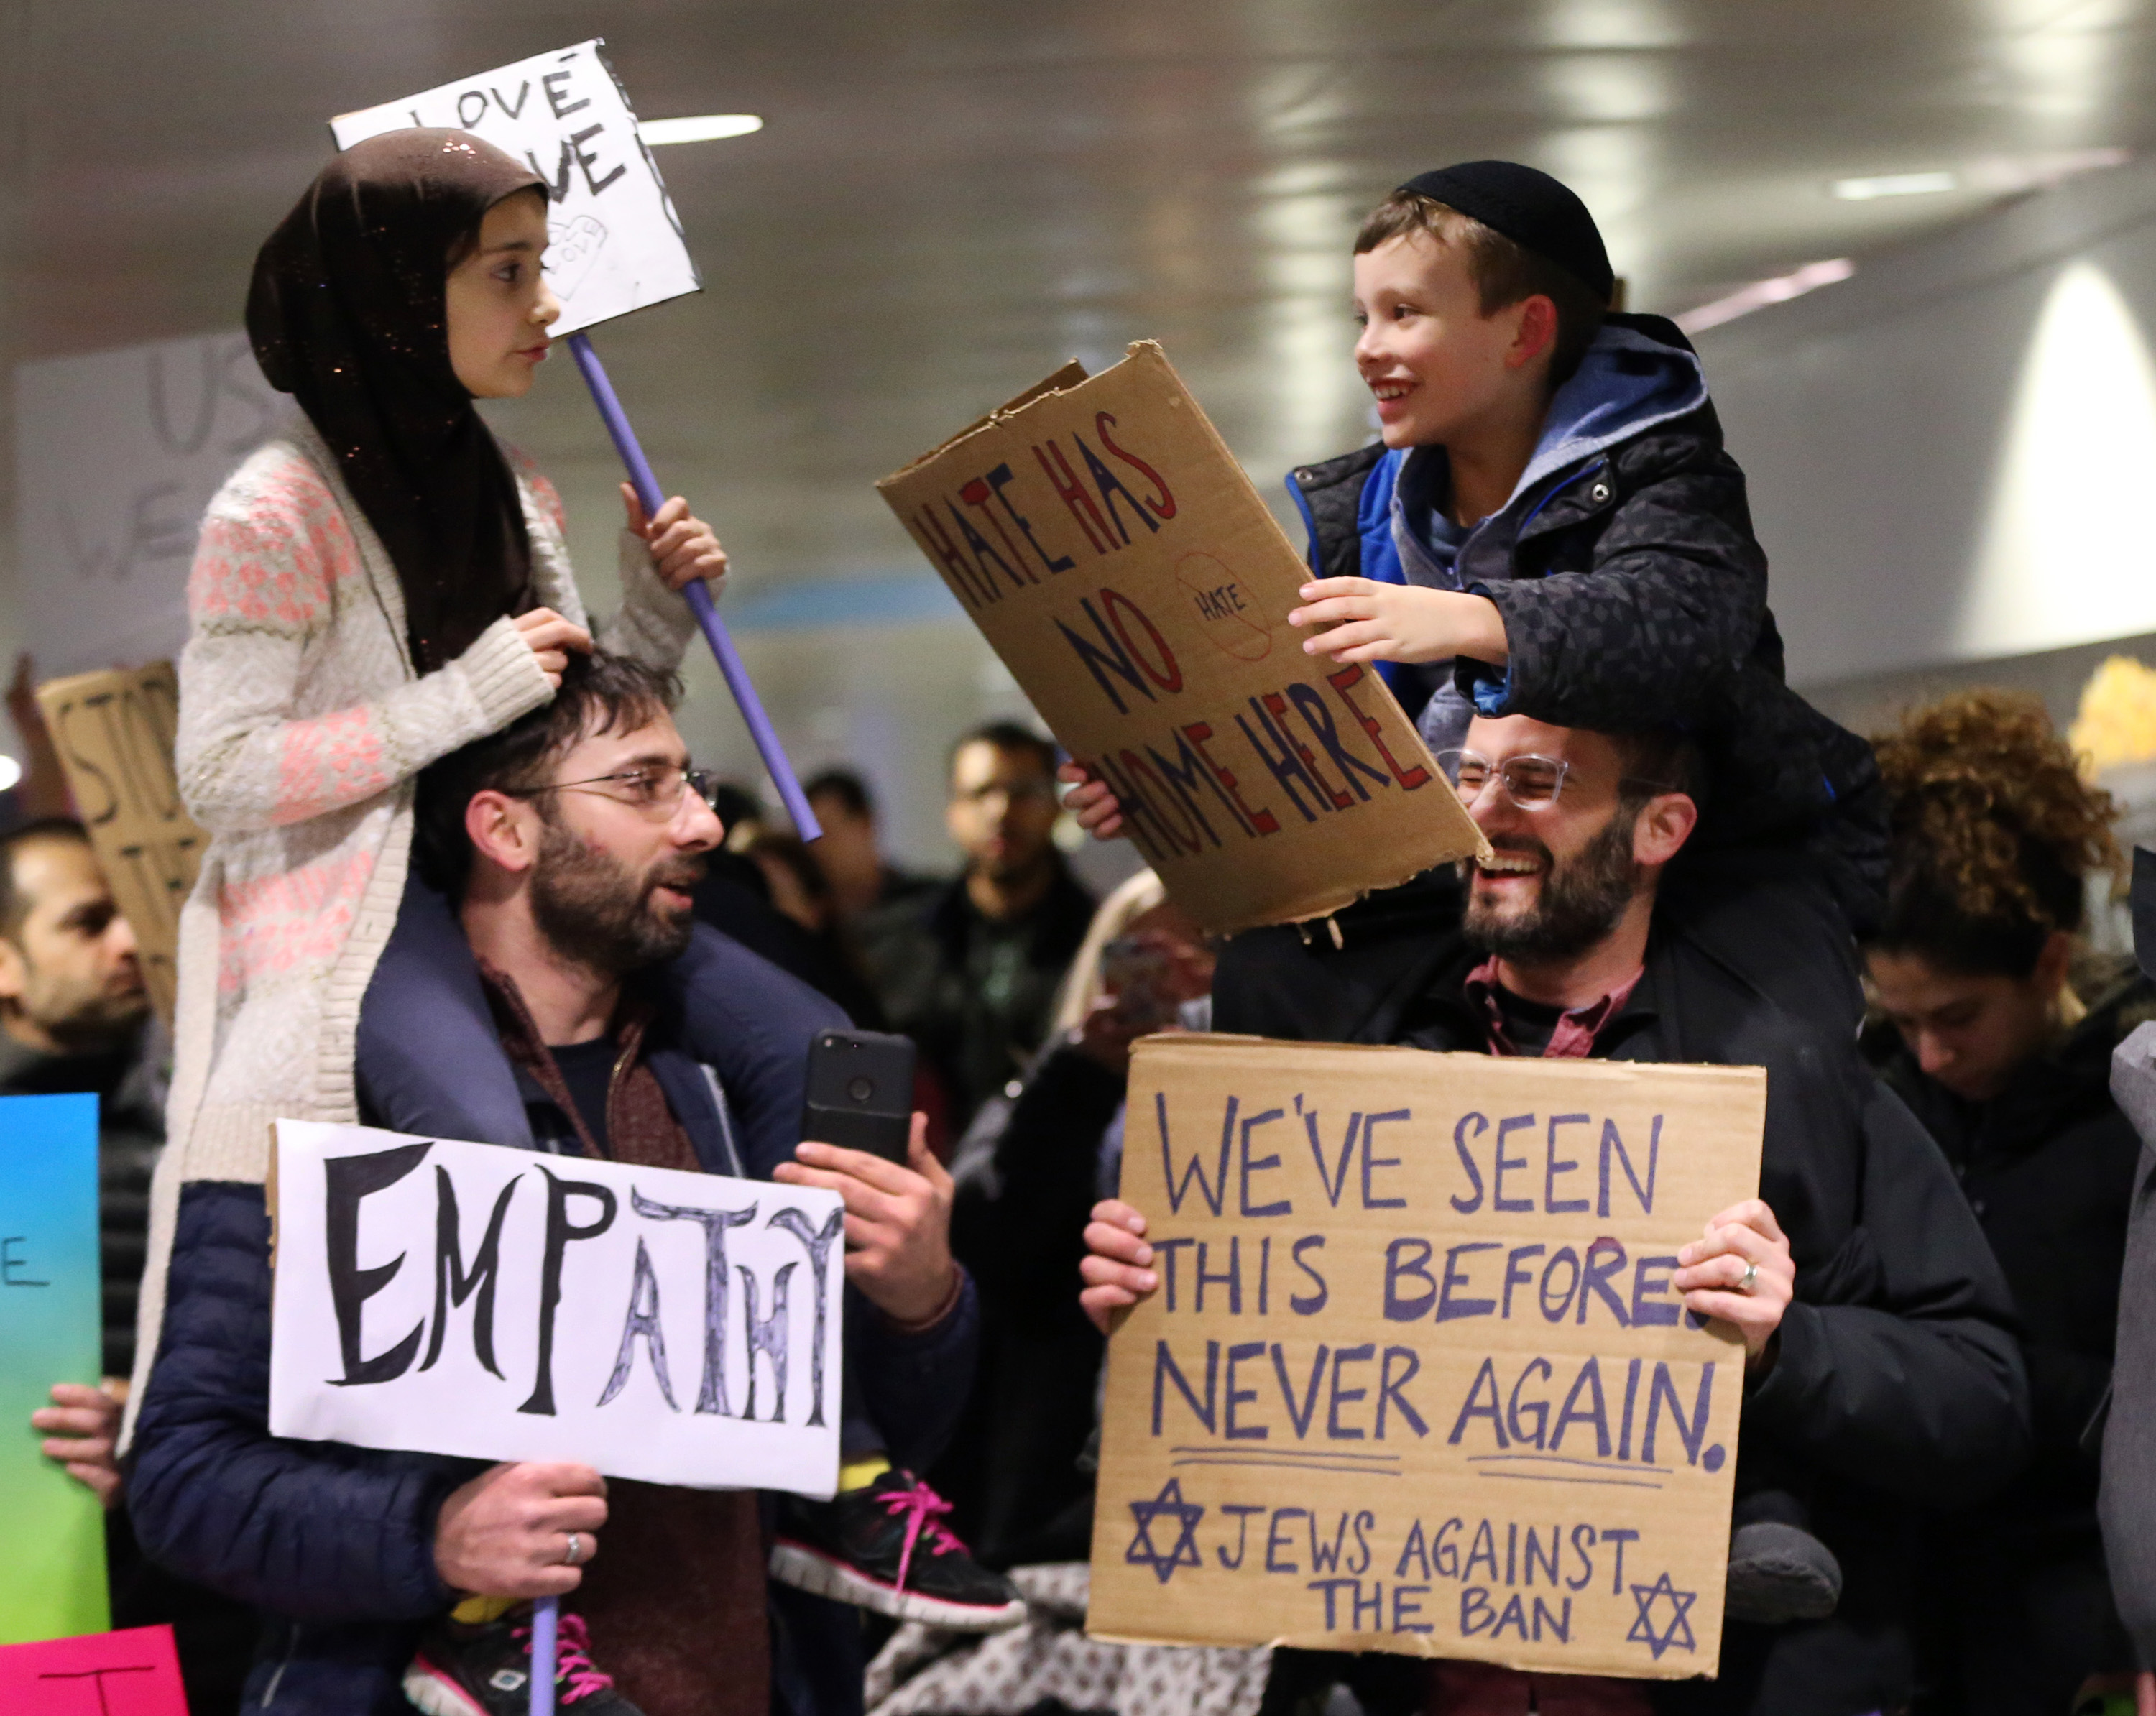 A smiley shot of a young girl in a hijab and a little boy in a kippah peacefully protesting President Donald Trump's immigration order made headlines and was reteweeted 13,000 times across the internet as people celebrated. Sitting on the shoulders of their fathers: Meryem Yildirim, 7, and Adin Bendat-Appell, 9 carried the signs:  Love Love Love  and  Hate Has No Home Here  at O'Hare International Airport in Chicago, Ill. Captured at a decisive moment by the Chicago Tribune's  Nucci DiNuzzo, people praised the universality of its message.